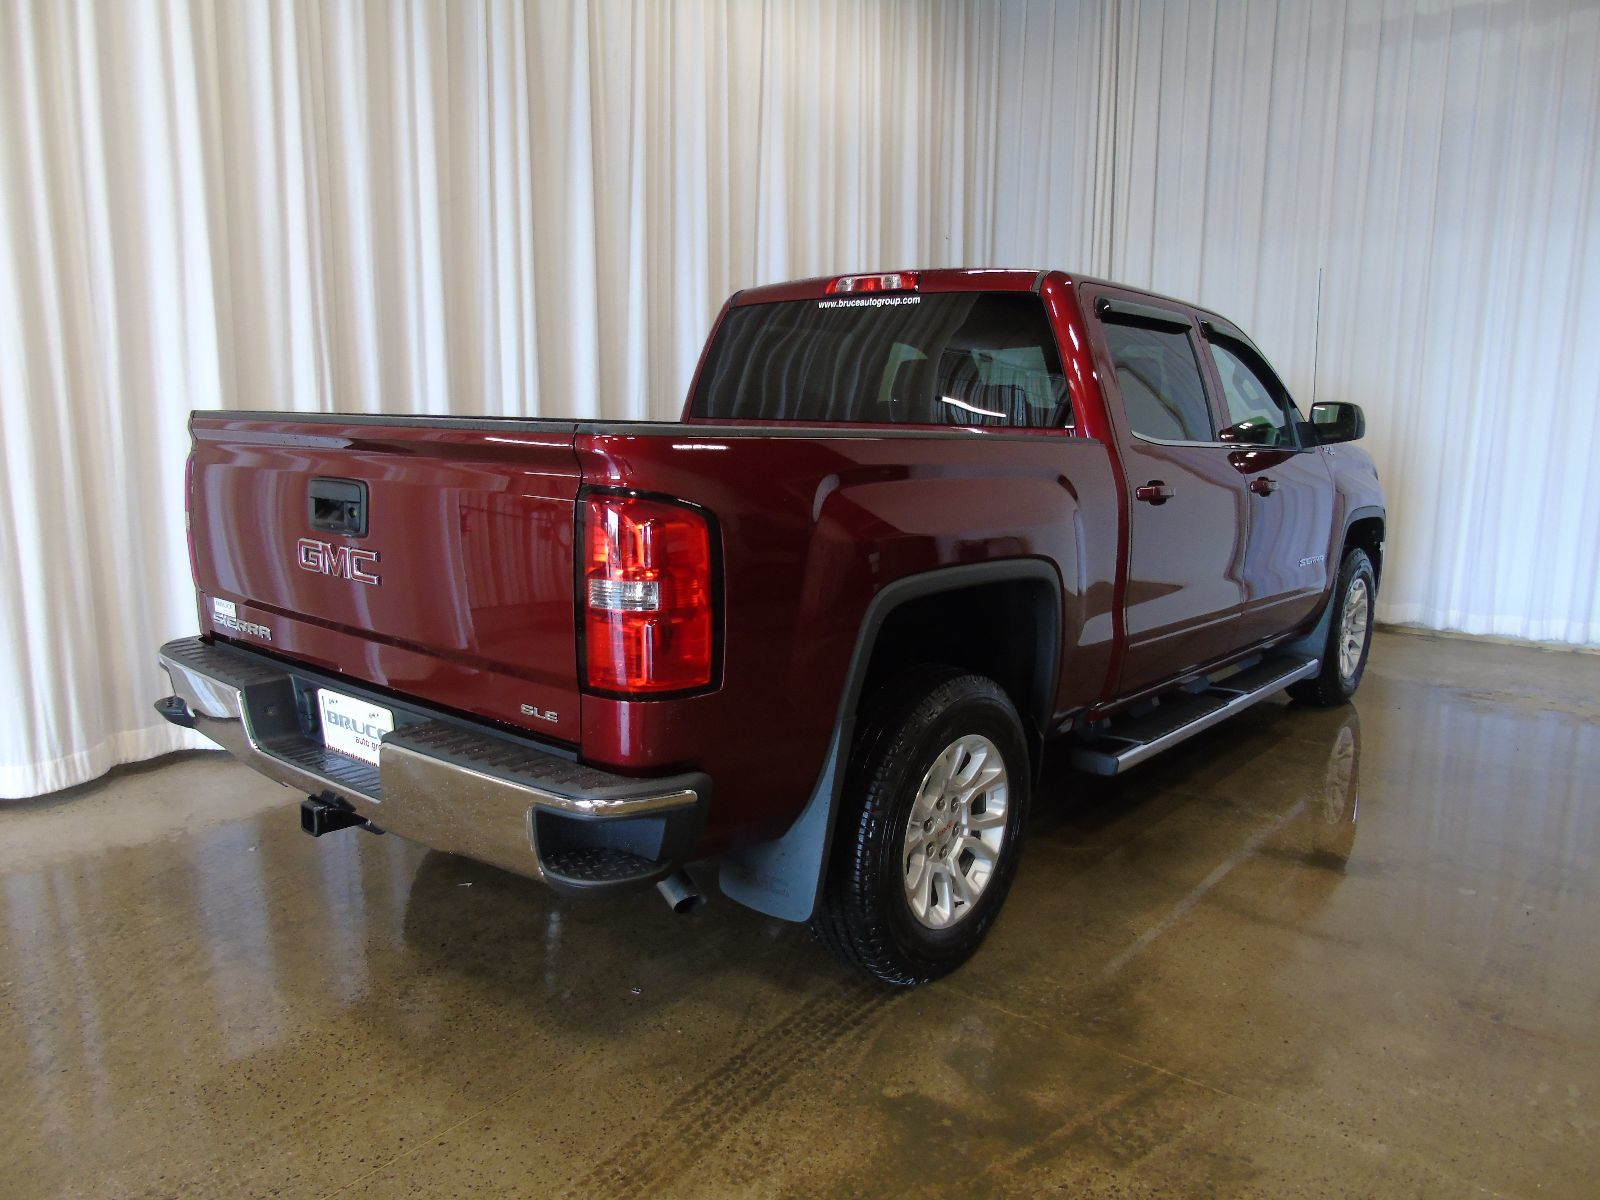 new 2017 gmc sierra 1500 sle 5 3l 8 cyl automatic 4x4 crew cab in middleton gd17016. Black Bedroom Furniture Sets. Home Design Ideas